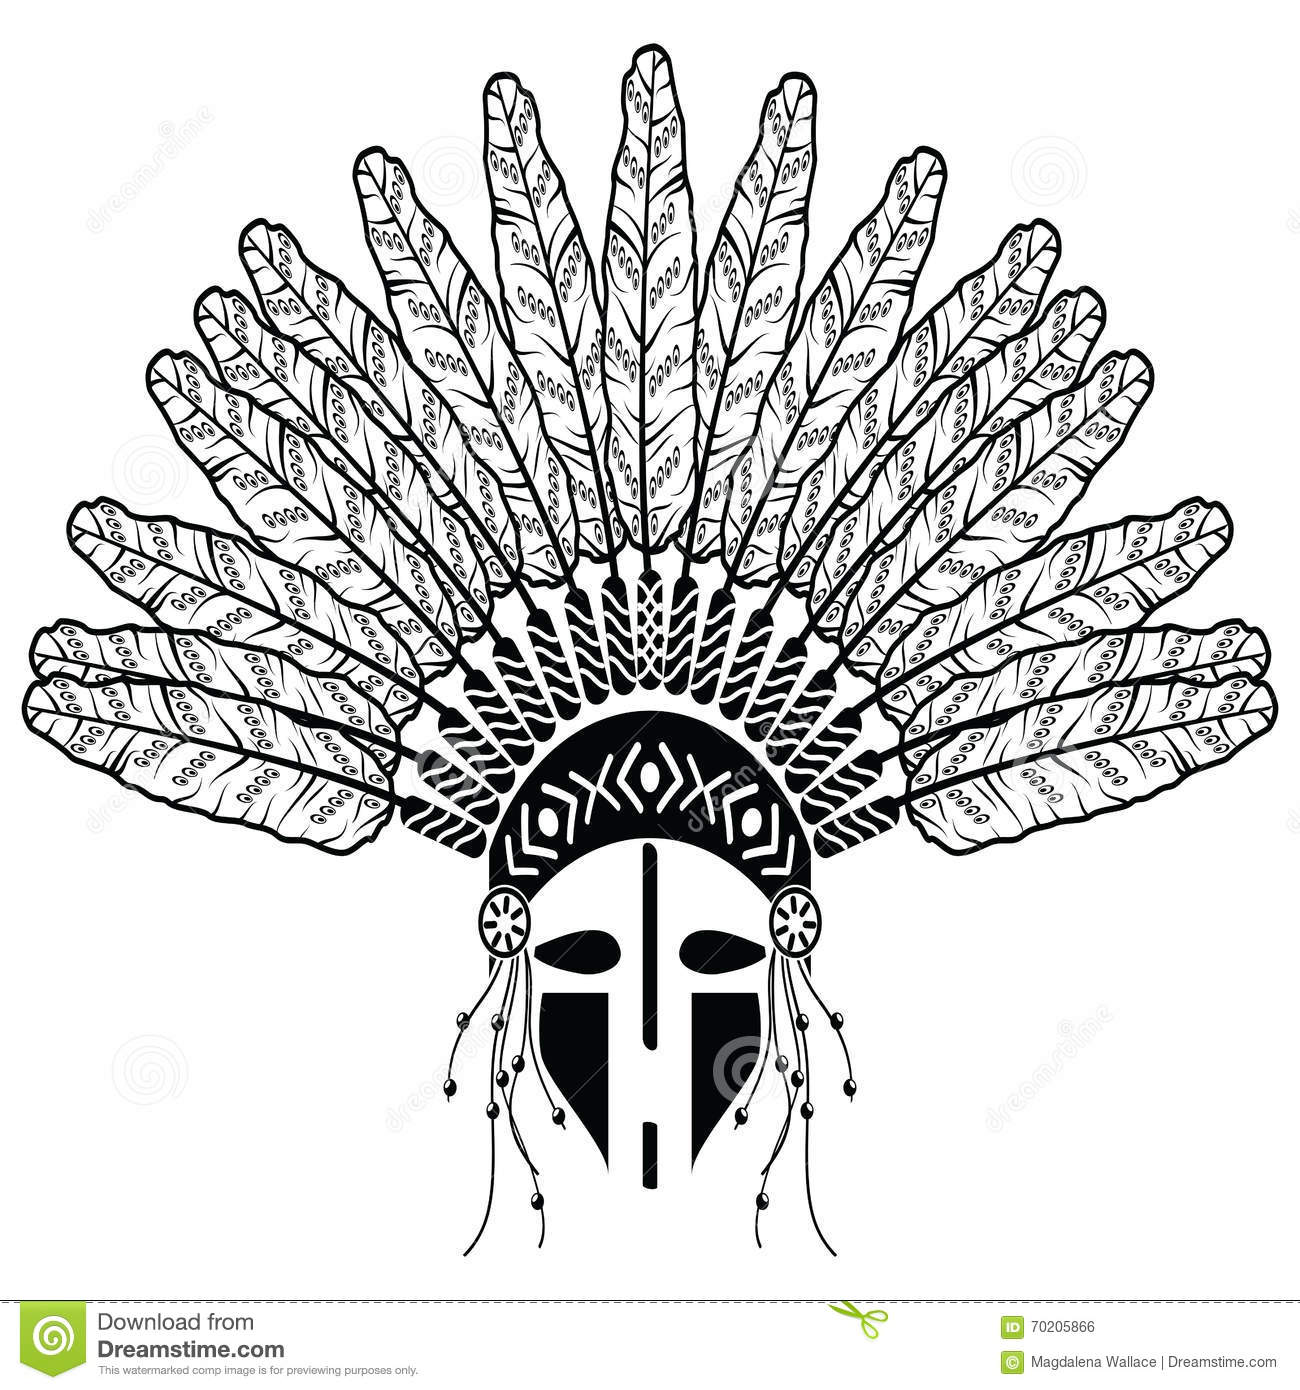 fefb0386d5aa7 Aztec, ethnic style headdress with decorative feathers, beads symbolizing  native American tribes and warrior